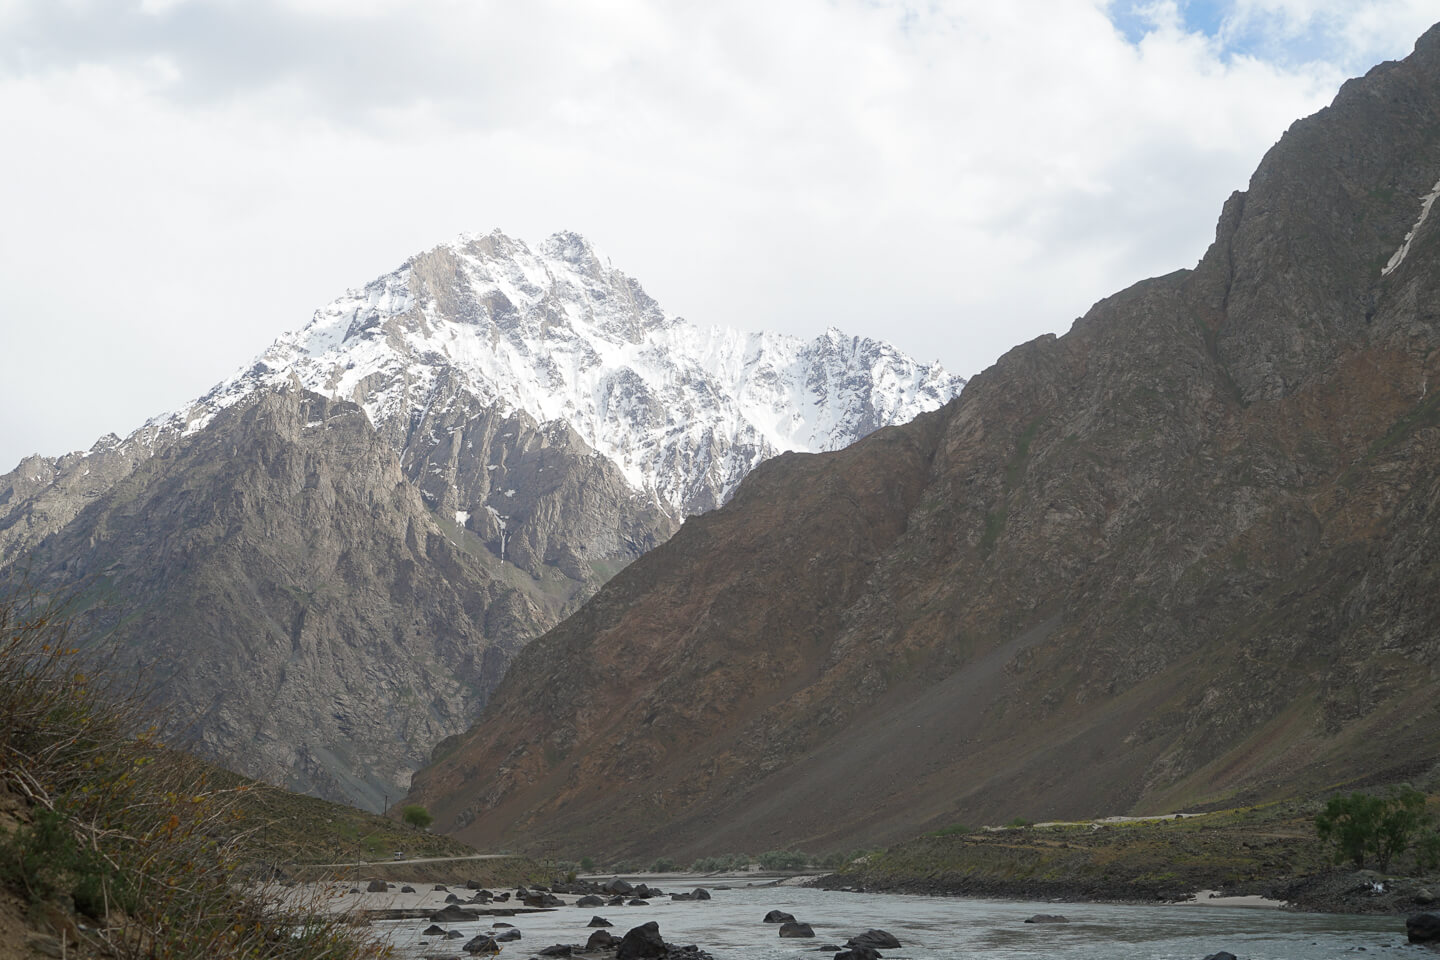 Panj river and the Pamir Mountains